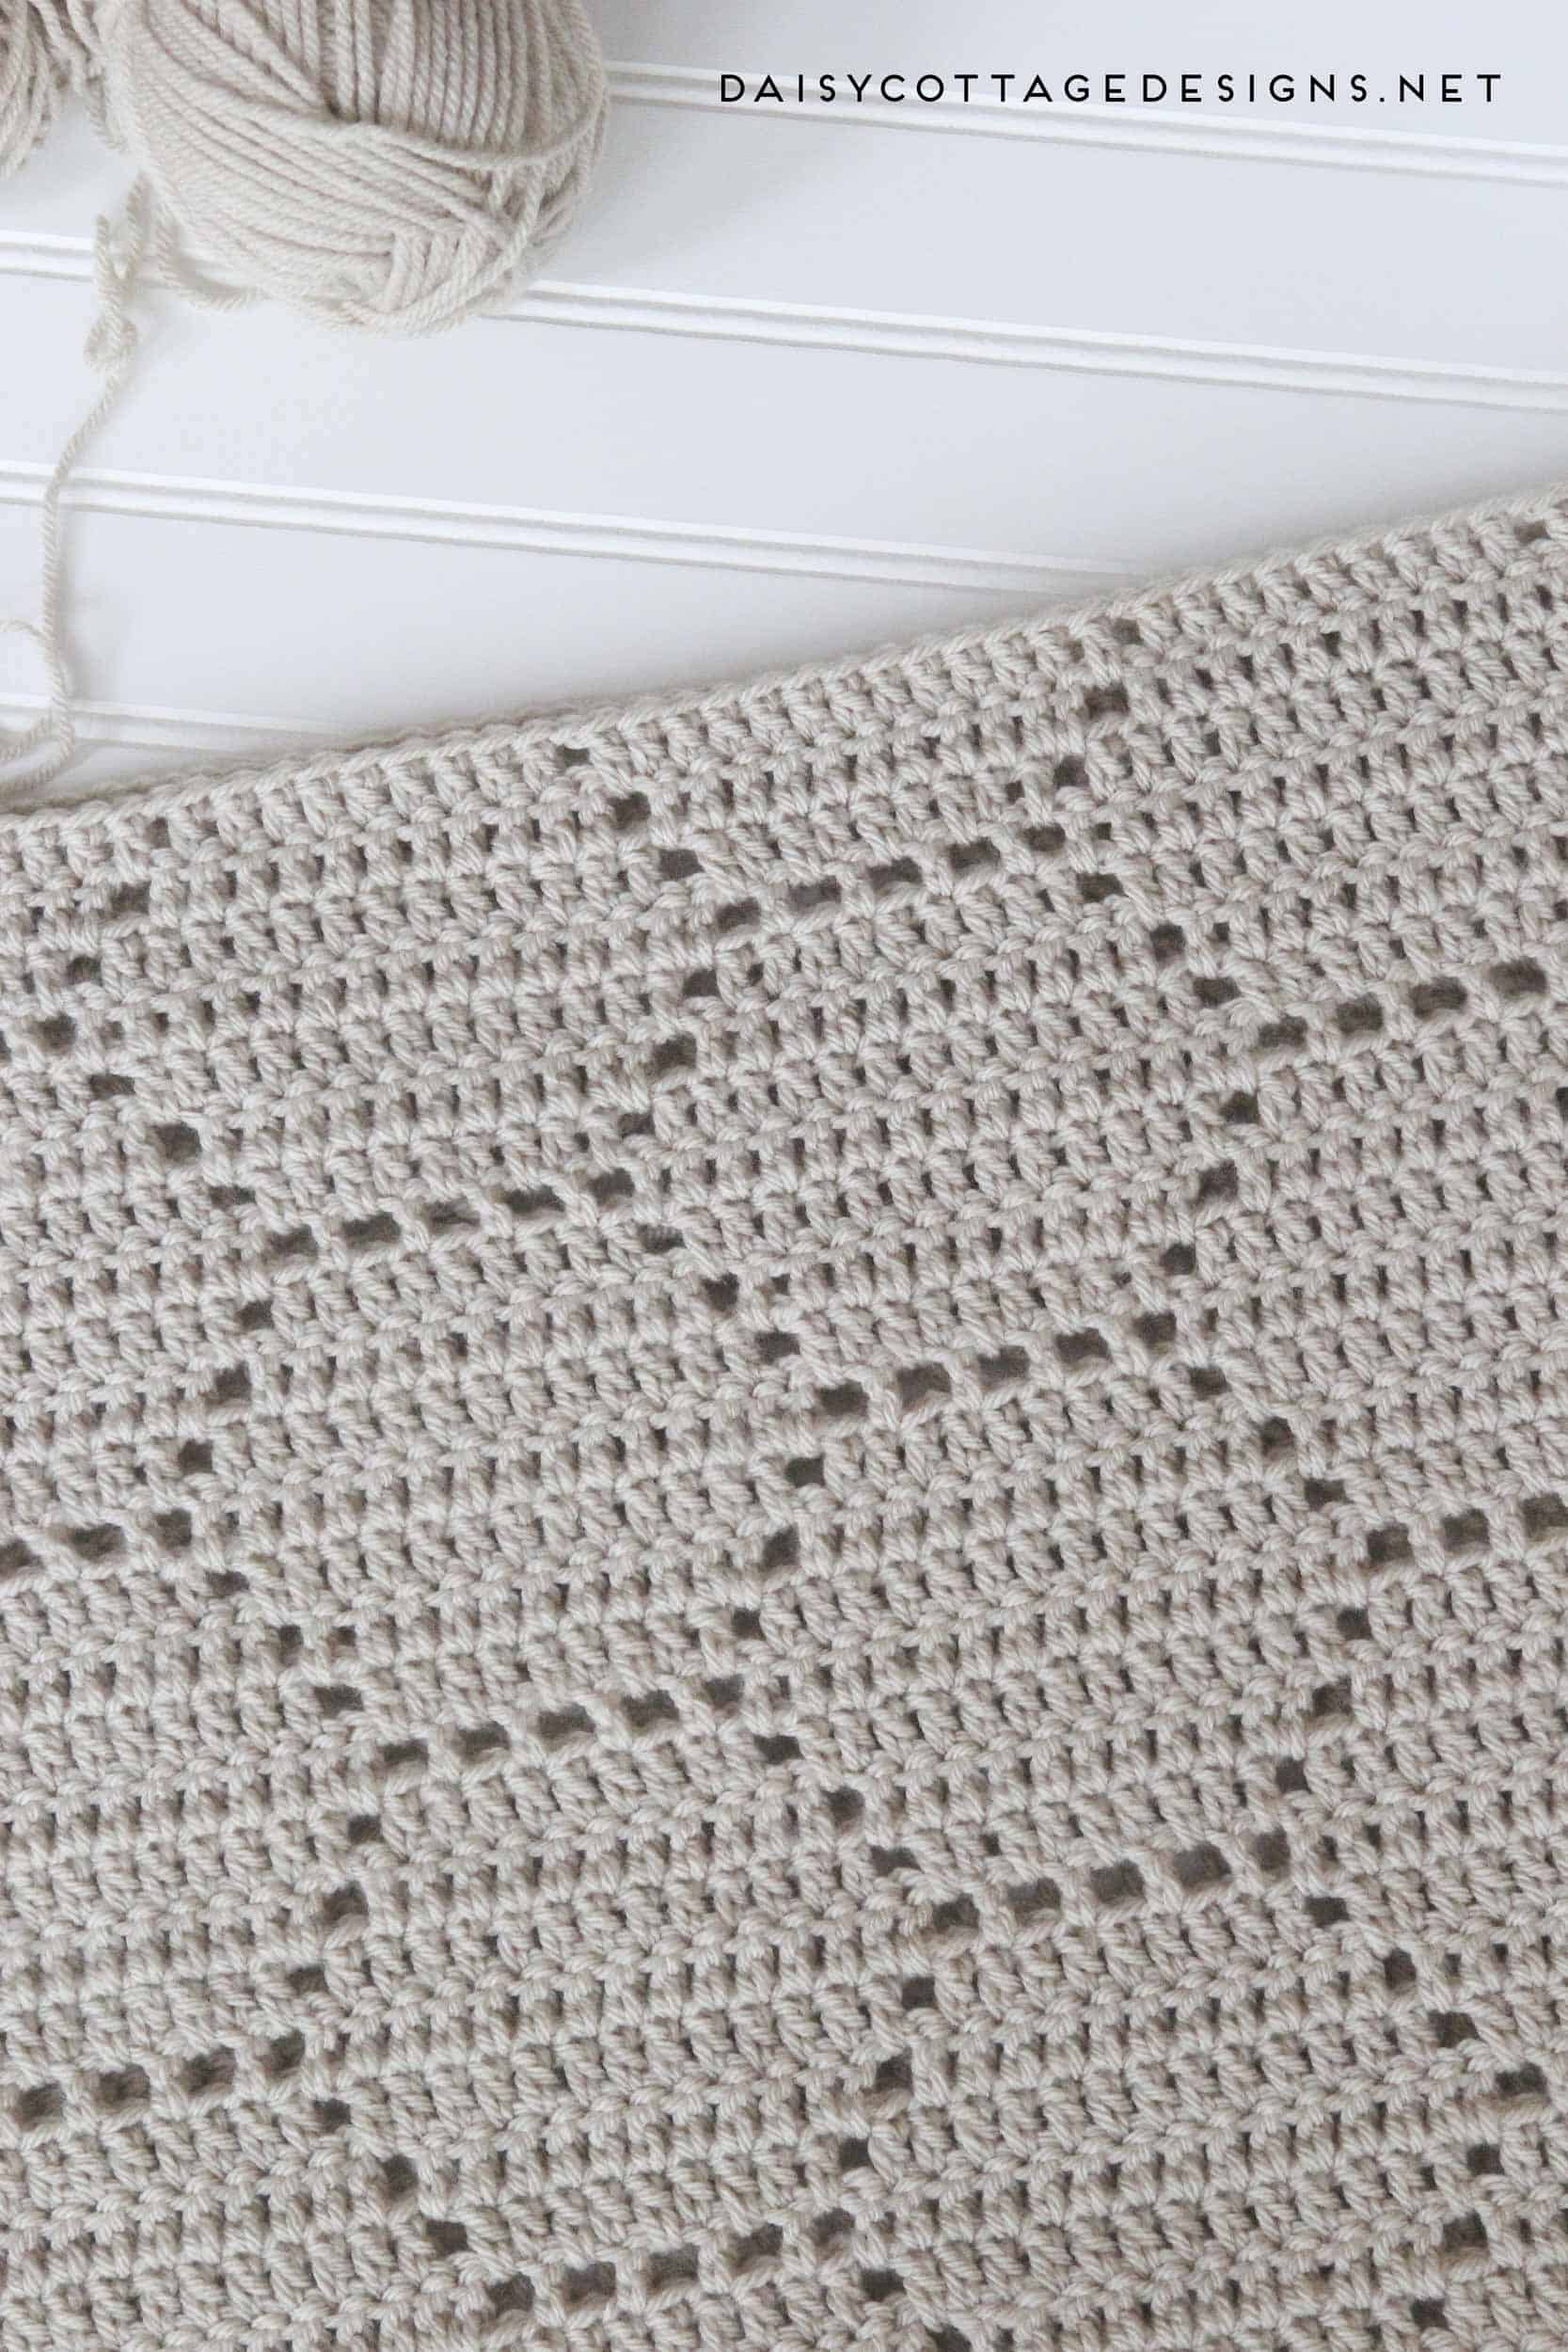 Honeycomb Crochet Blanket: A Pattern Review - Daisy Cottage